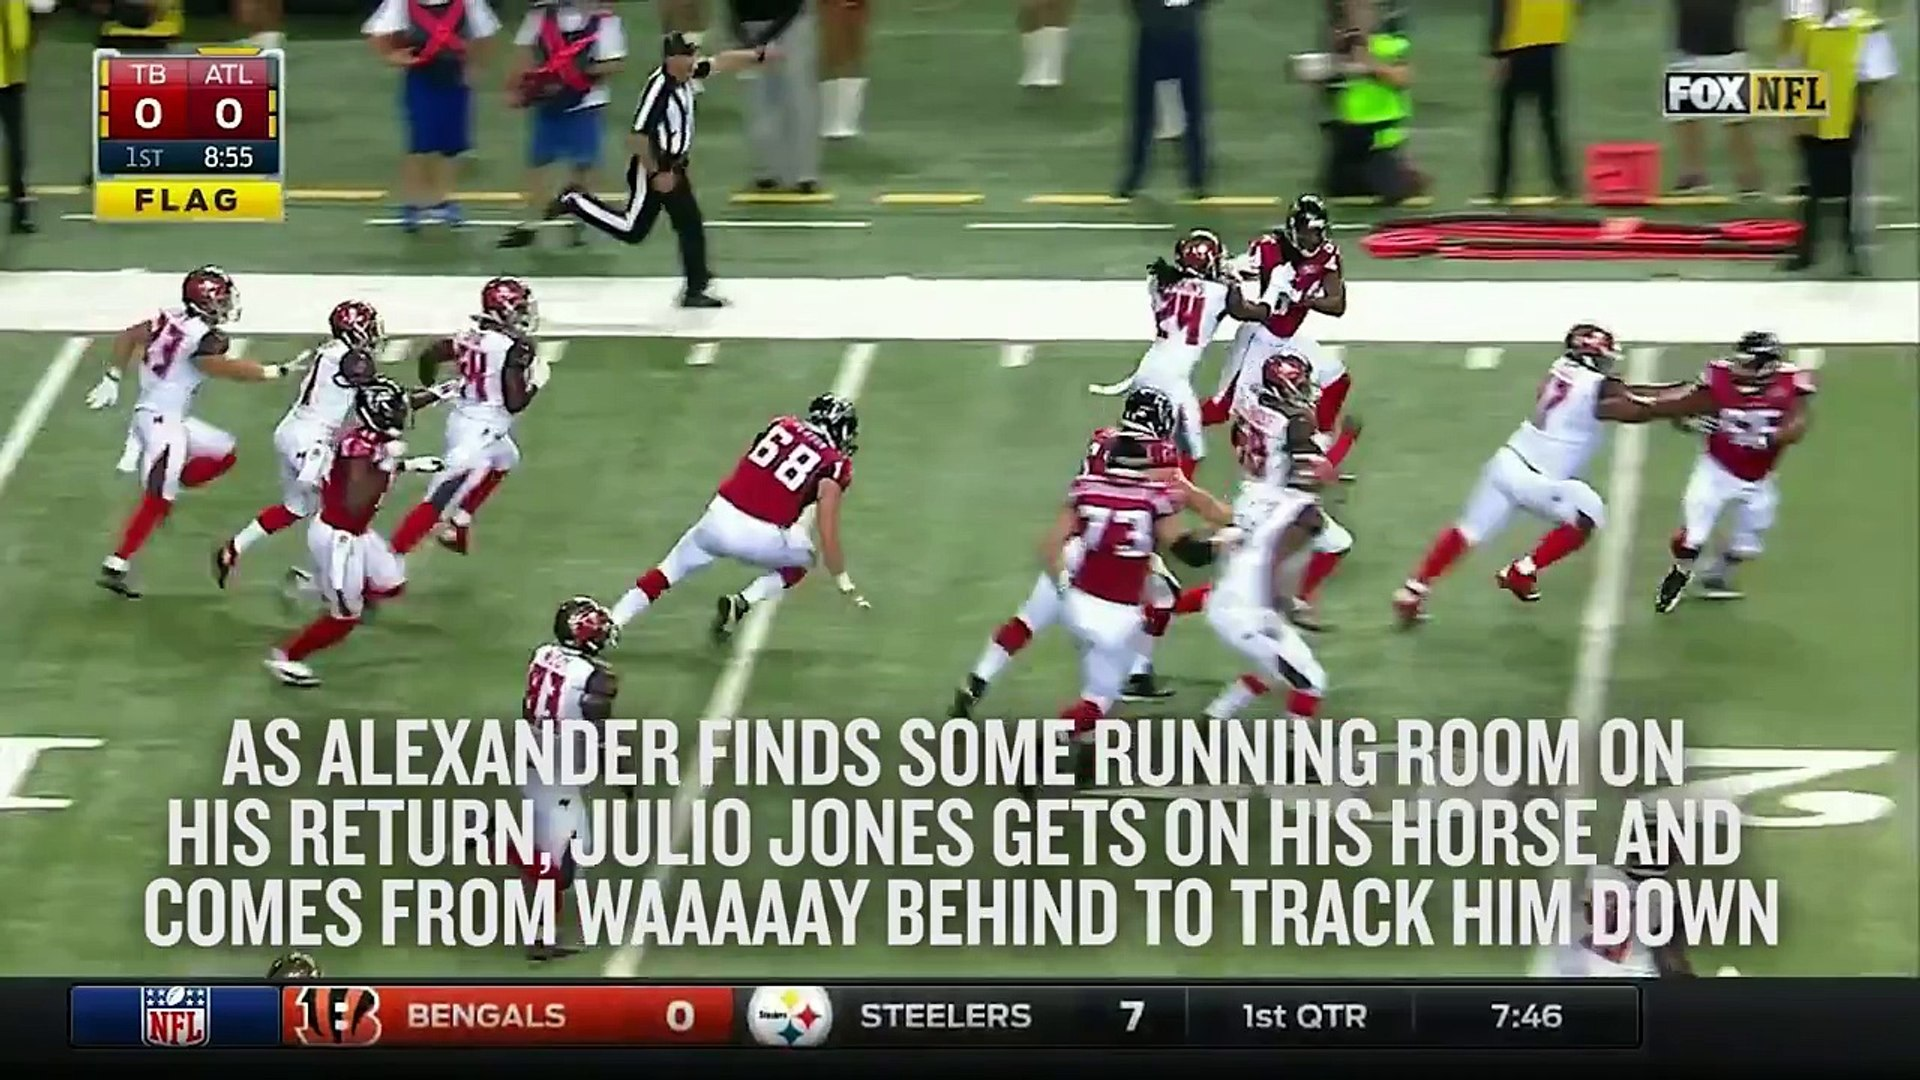 Julio Jones is one of the NFLs fastest players